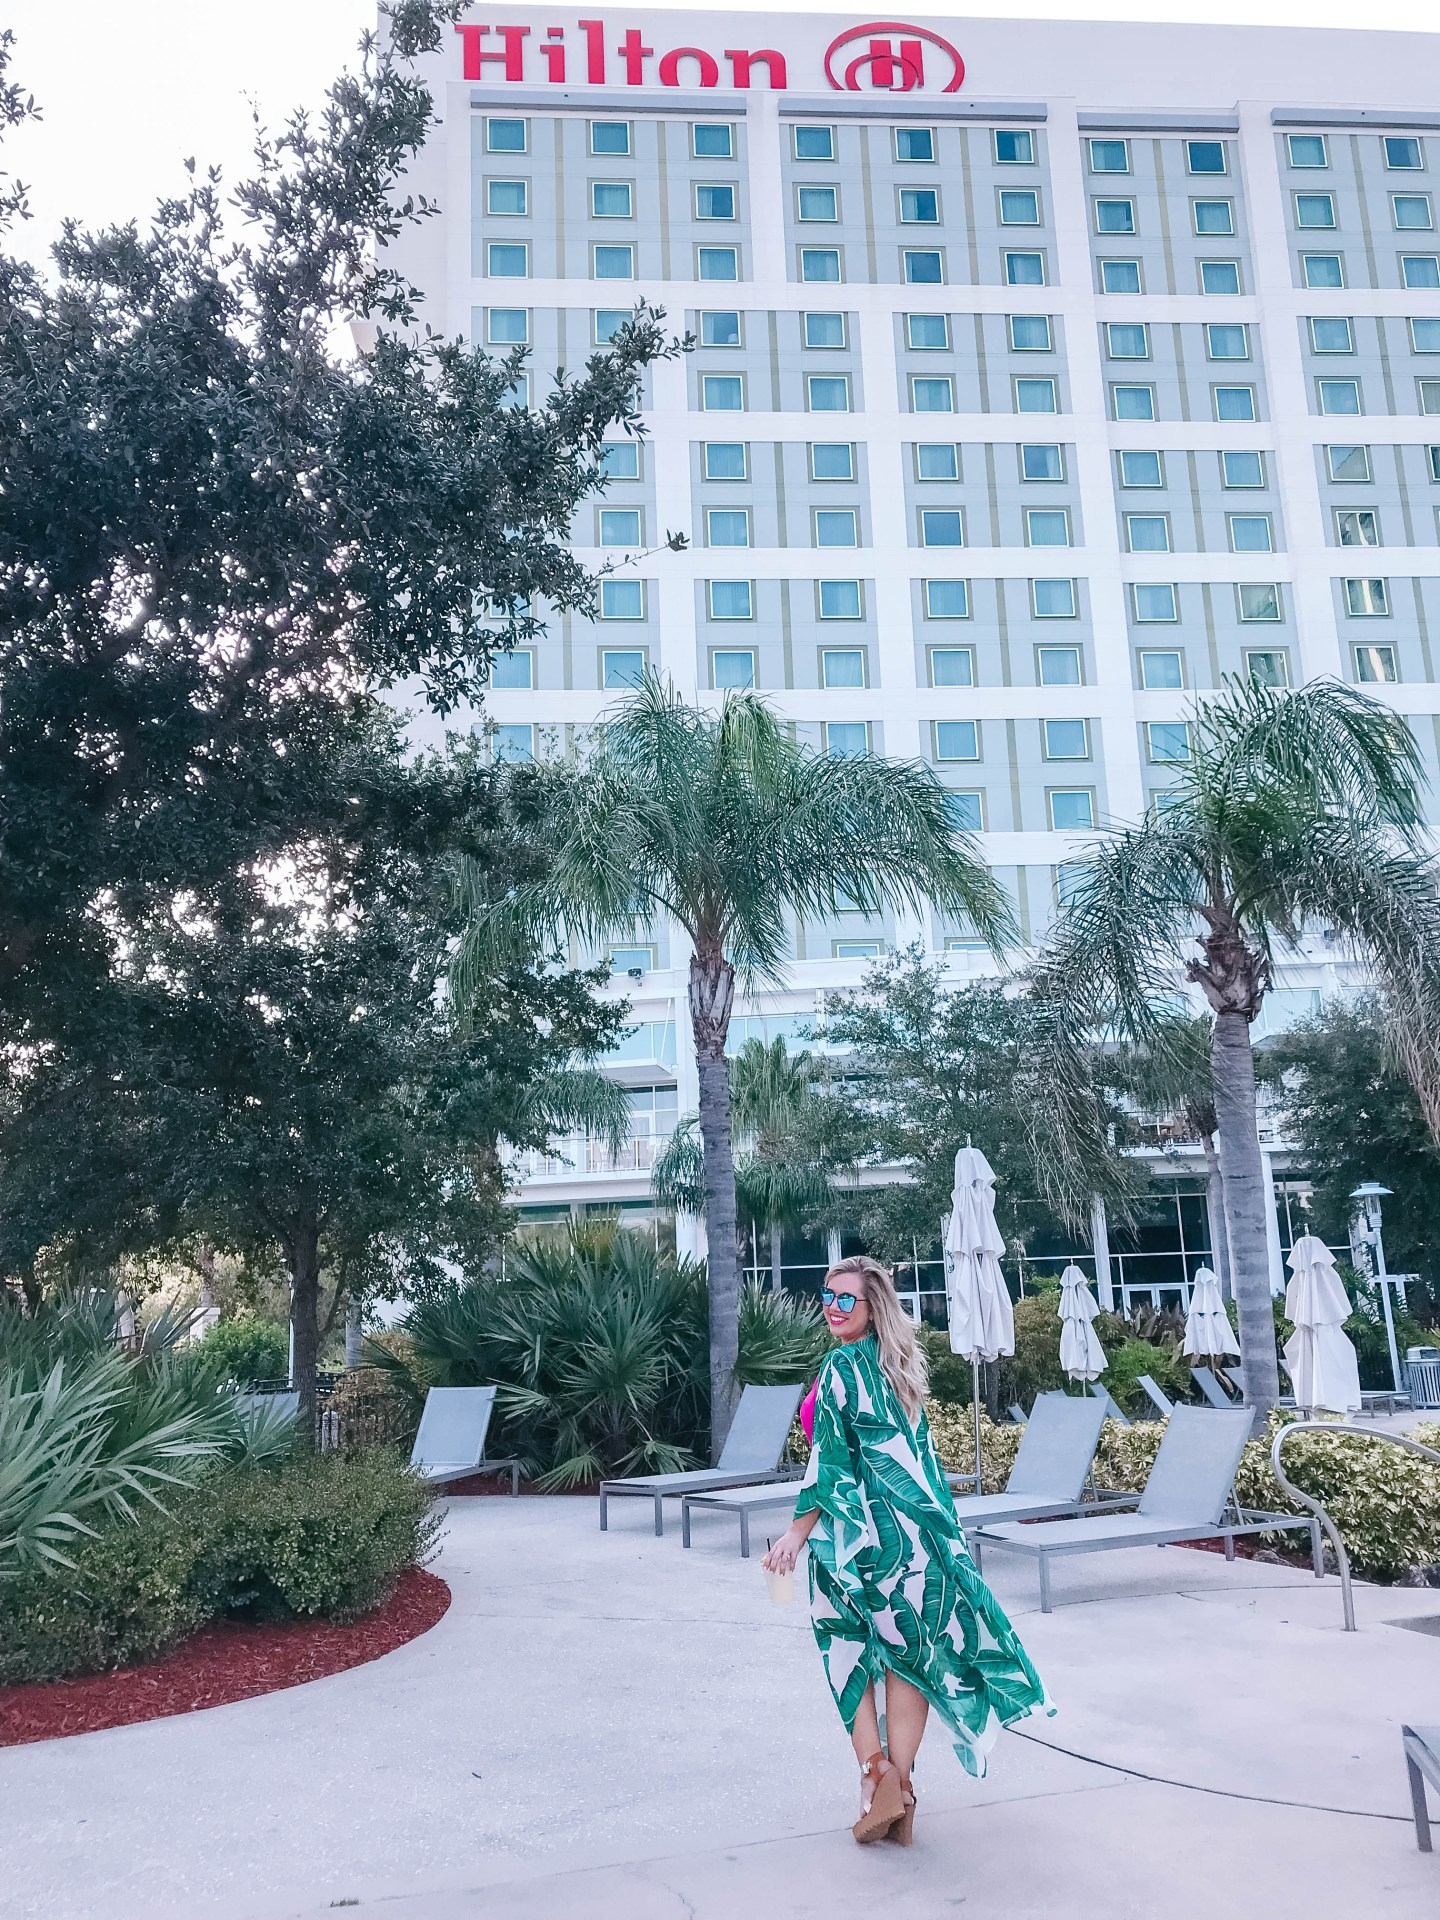 My Recent Stay in Paradise at The Hilton Orlando Resort (and what you can expect when you stay)